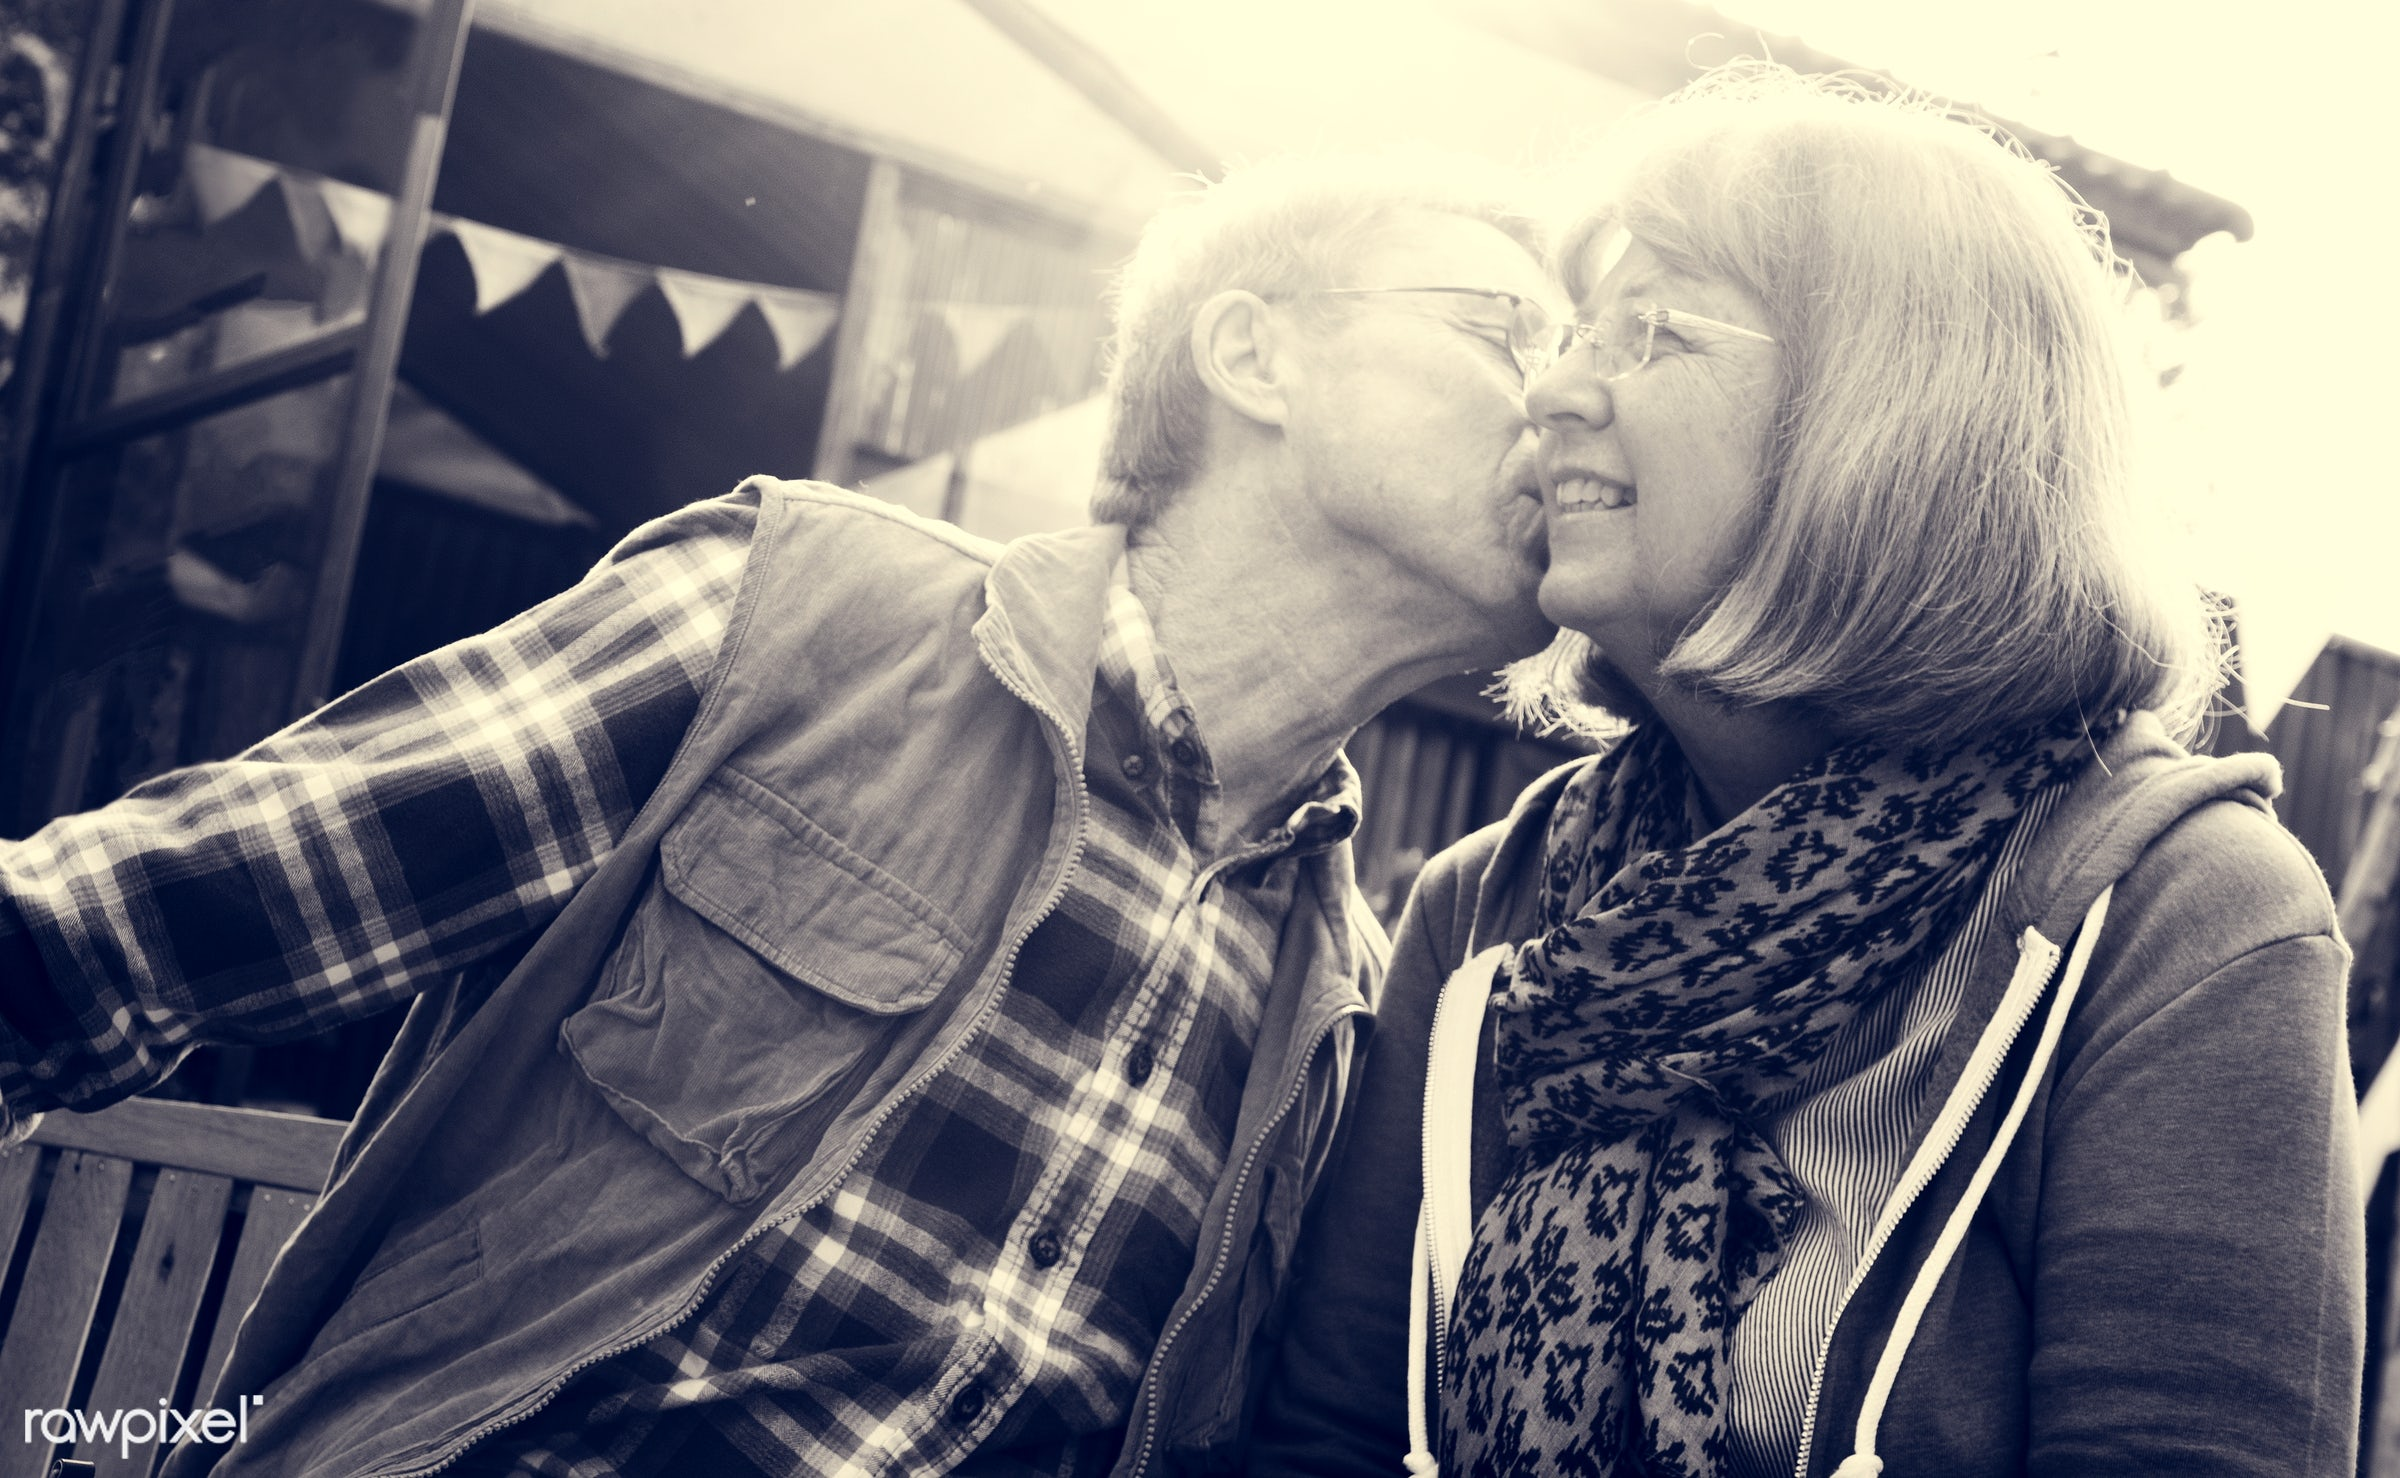 expression, person, grandfather, show, smitten, people, together, love, kiss, retirement, cherish, family, intimate, grandma...